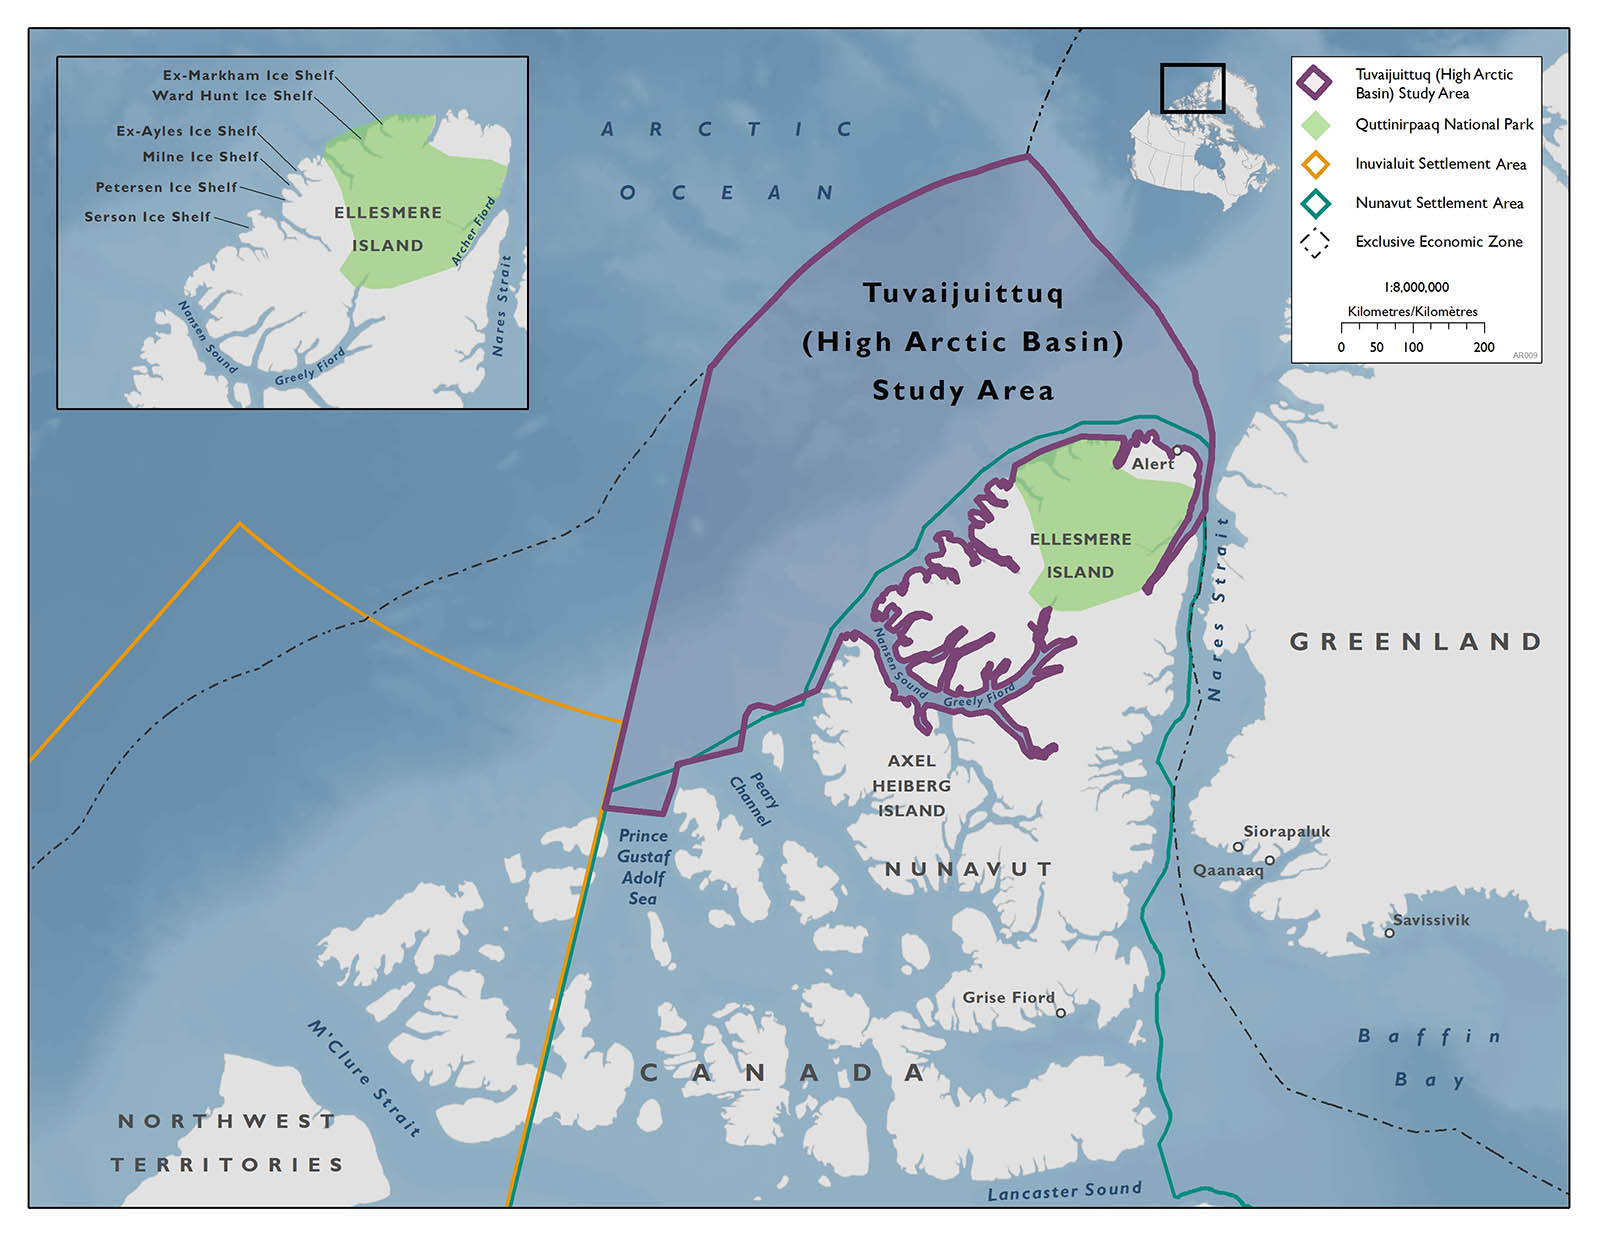 Map showing the Tuvaijuittuq study area